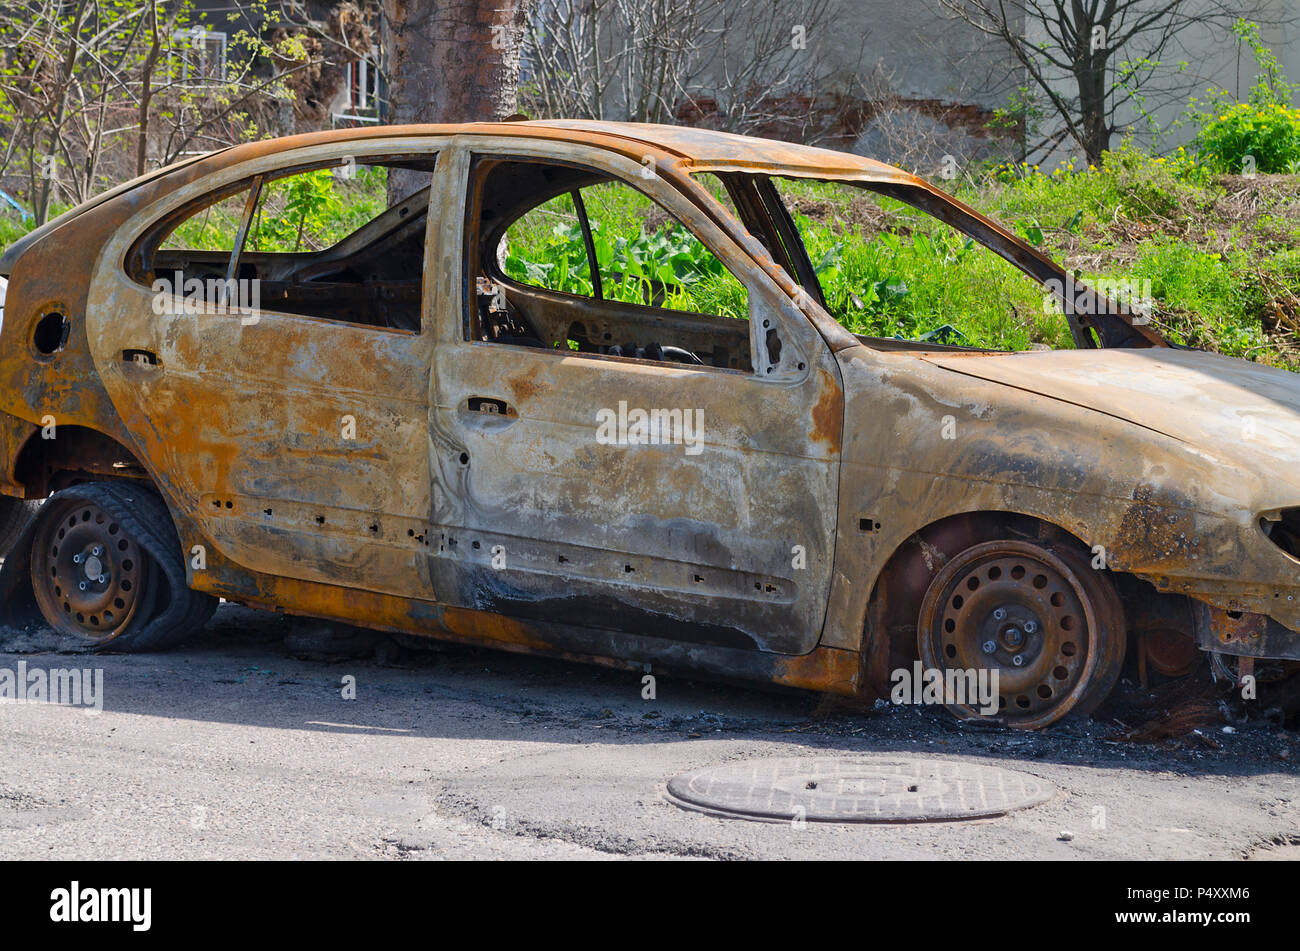 Burned car parked on the street side view - Close up photo of a burned out car - Stock Image